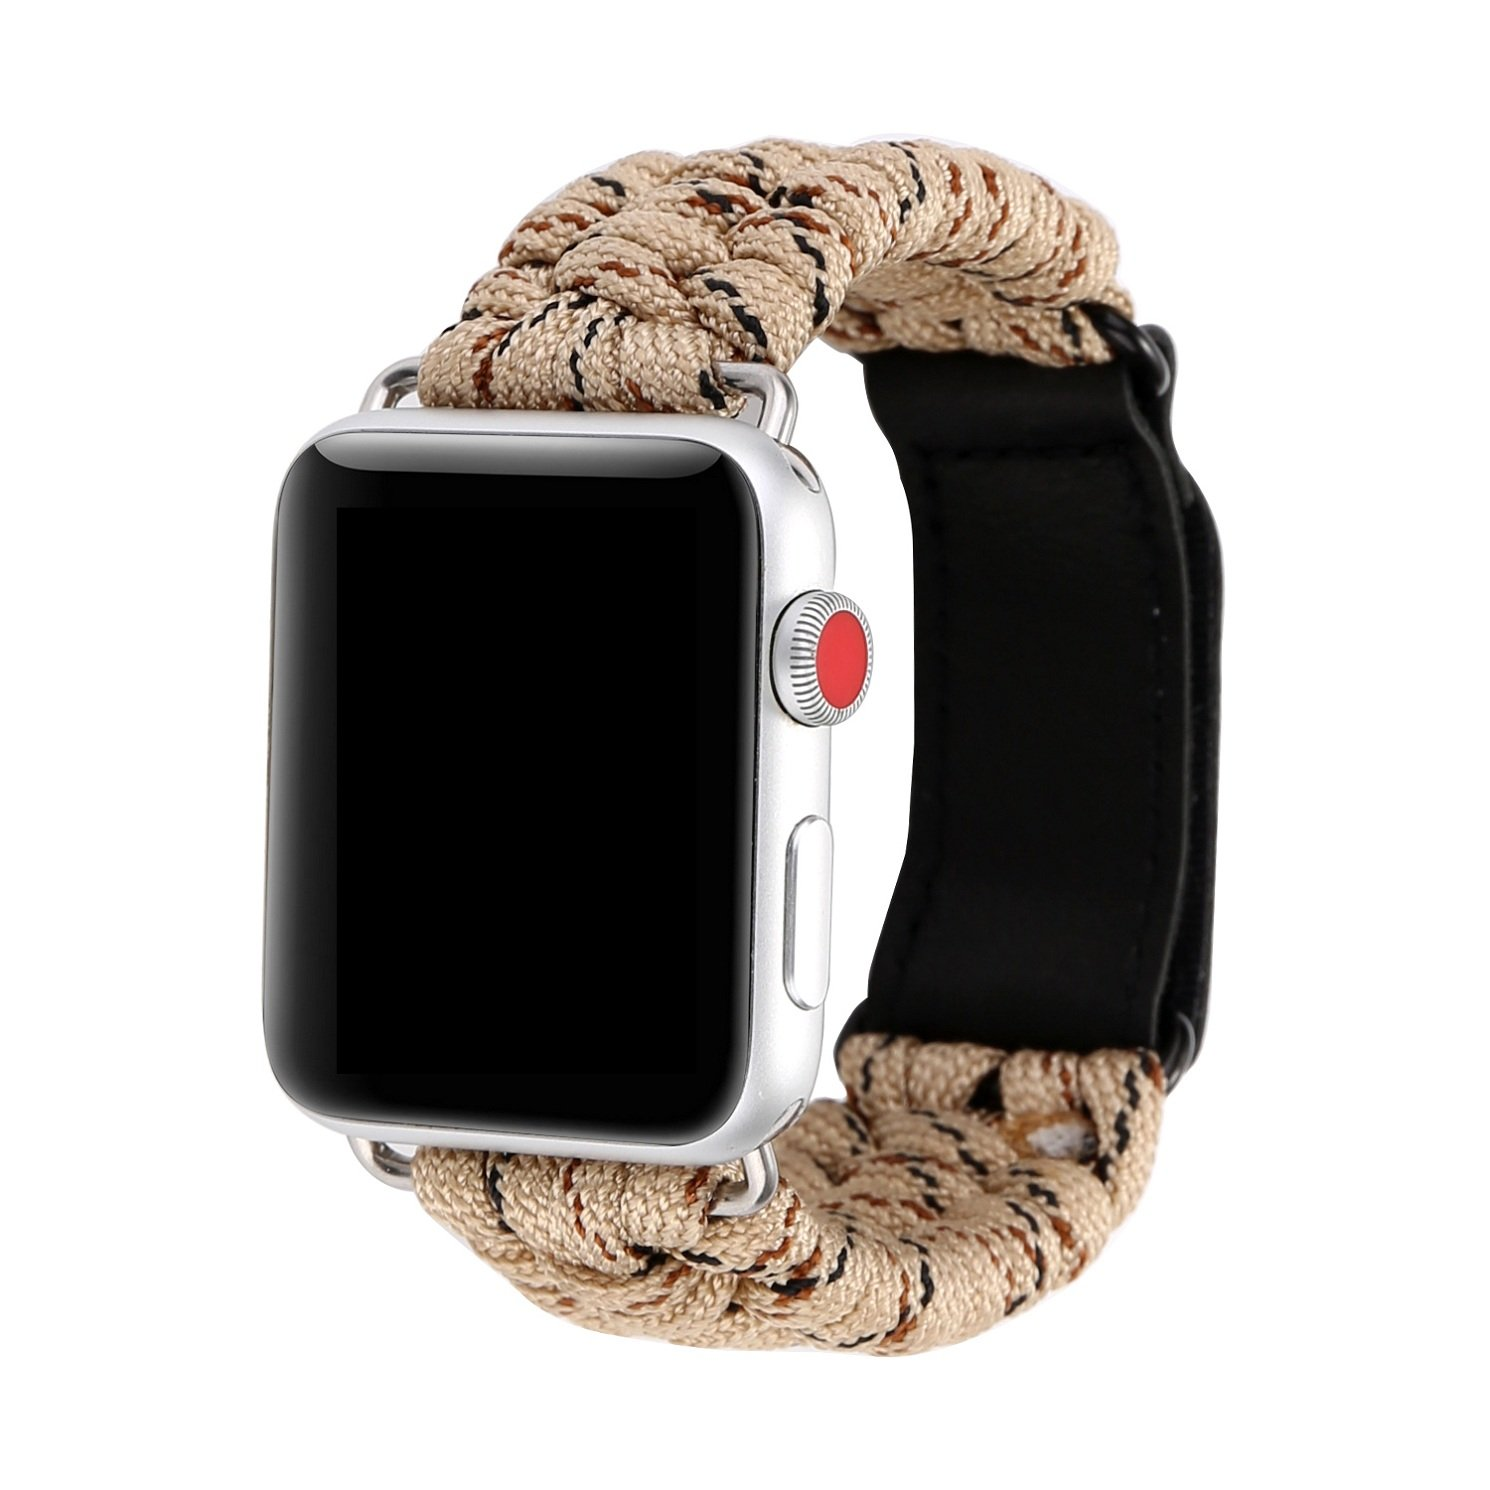 Juzzhou Watch Band For Apple iWatch Series 1/2/3 Sport Style Replacement Plait Textile Wriststrap Bracelet Watchband Wristband Wrist Strap With Adapter Magic Clasp Men Lady Women Camouflage Khaki 42mm